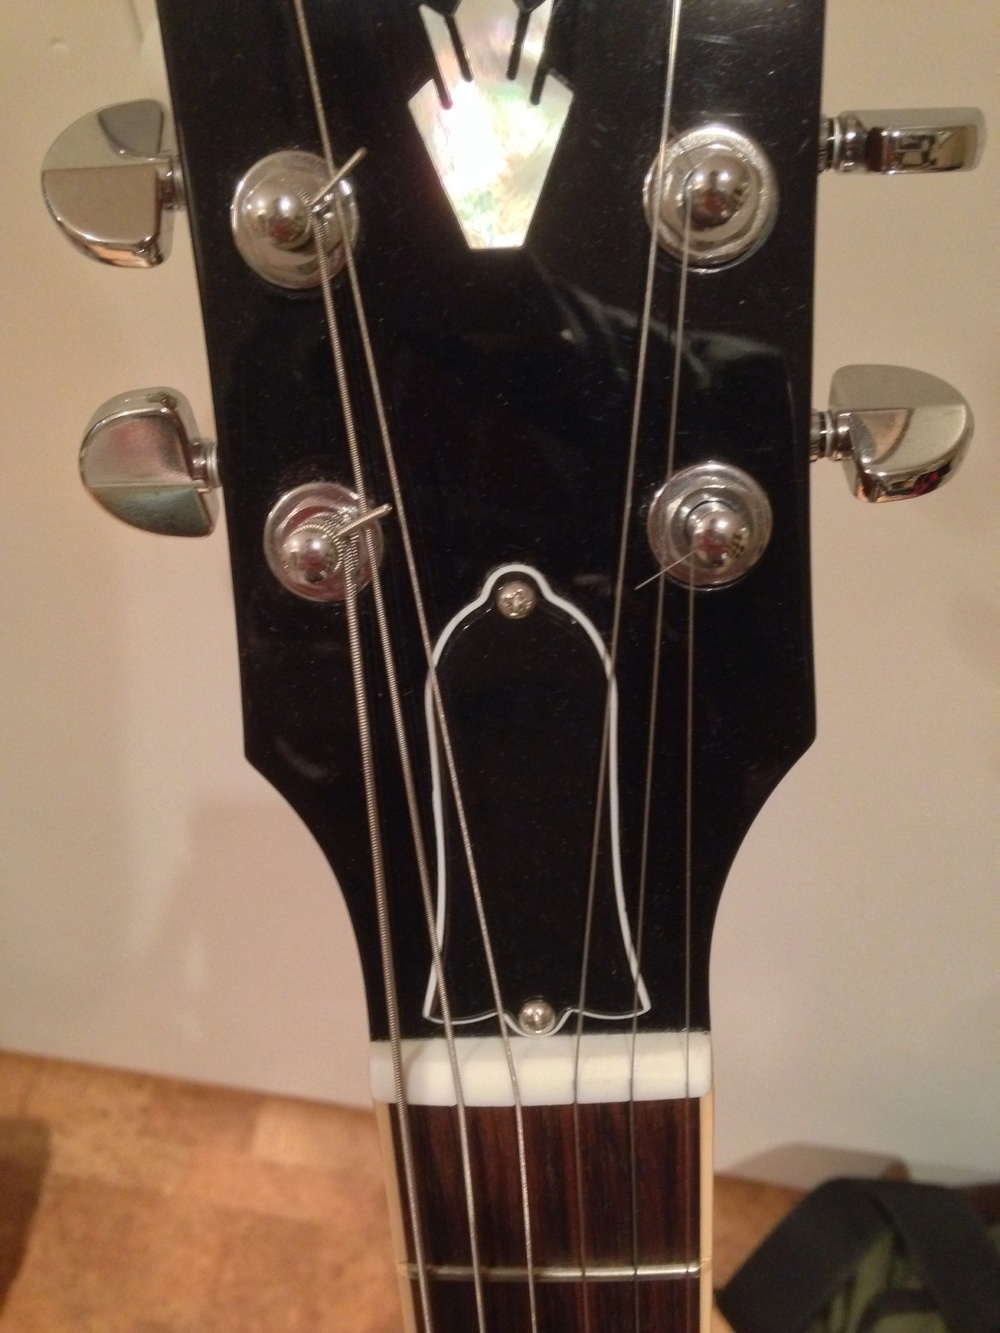 Gibsons require you to unscrew a cover-plate to get to the truss-rod bolt.